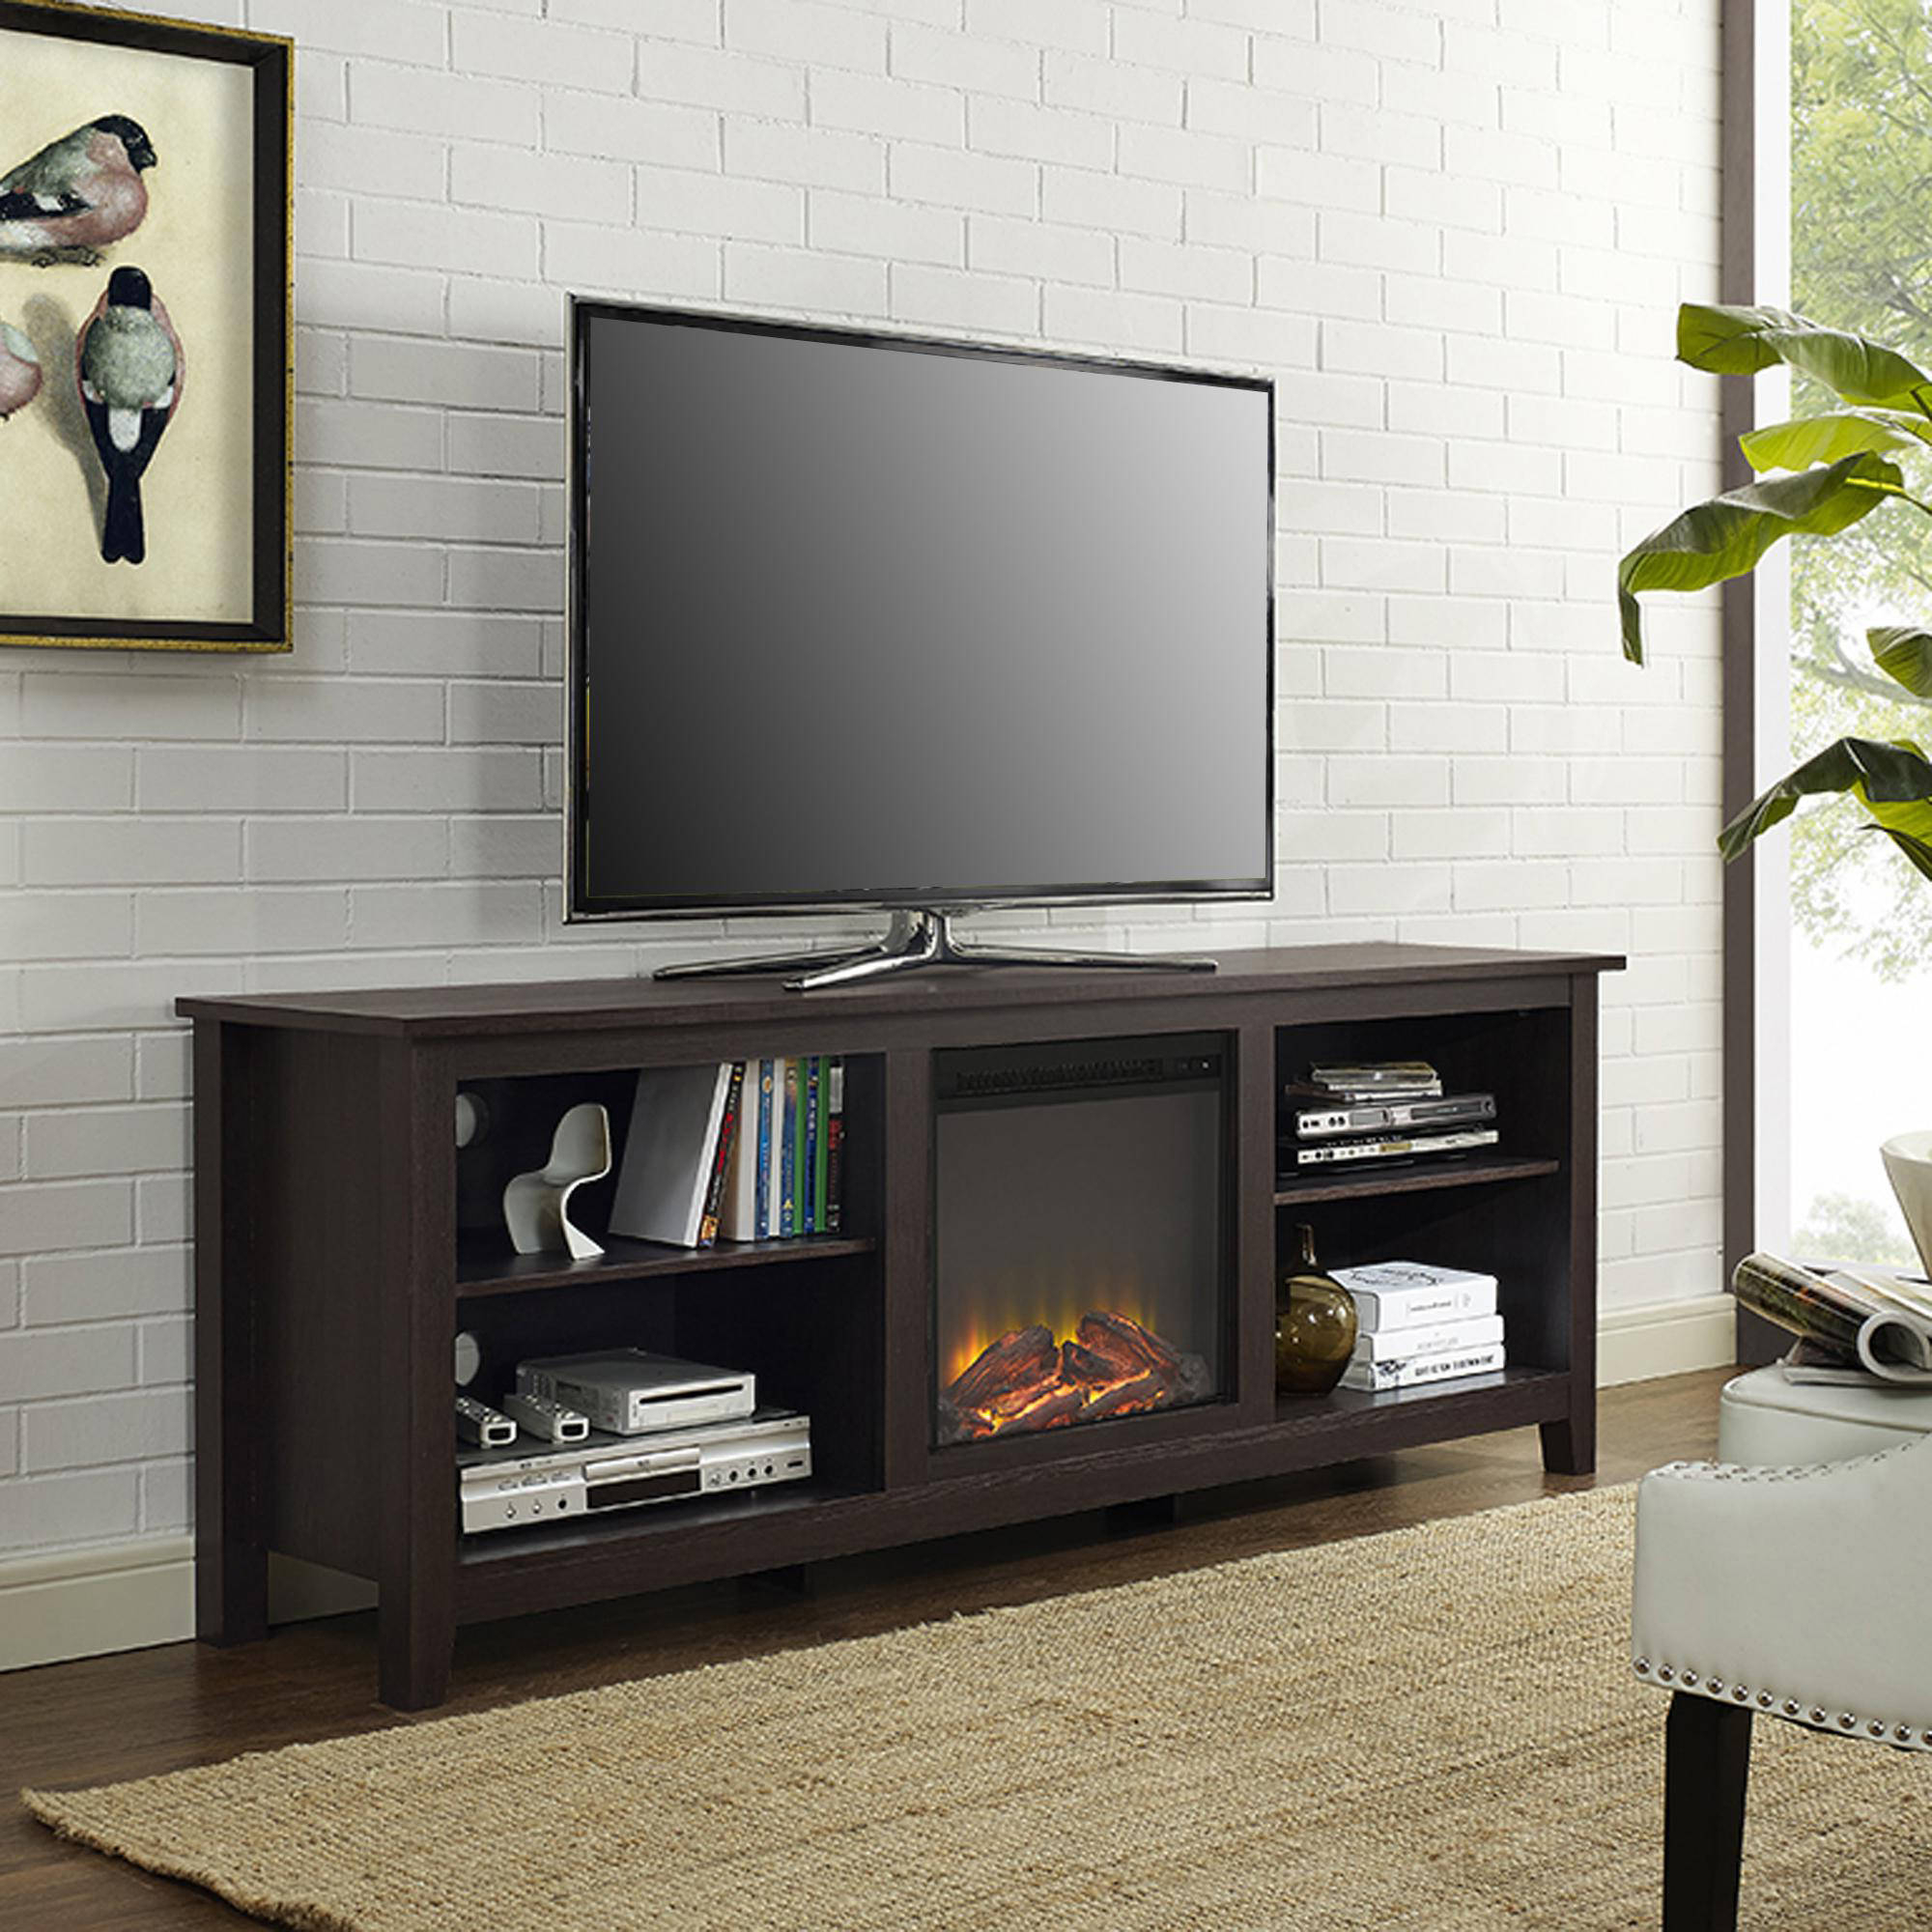 Tv Stands & Entertainment Centers – Walmart Intended For Century White 60 Inch Tv Stands (View 2 of 20)